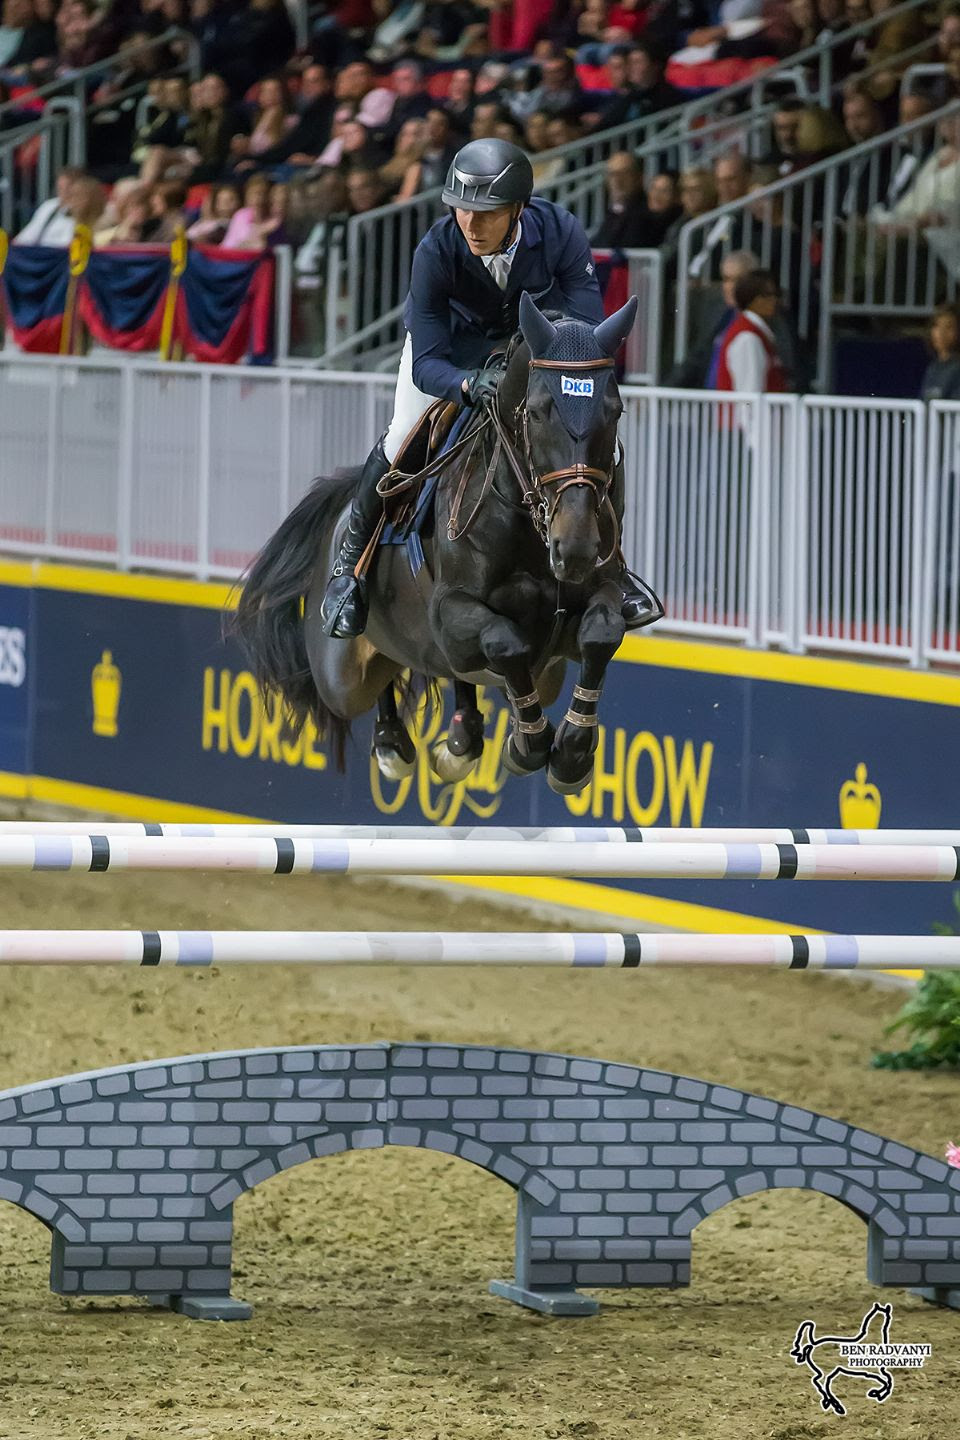 Thumbnail for Germany's David Will Scores Back-to-Back Victories at Royal